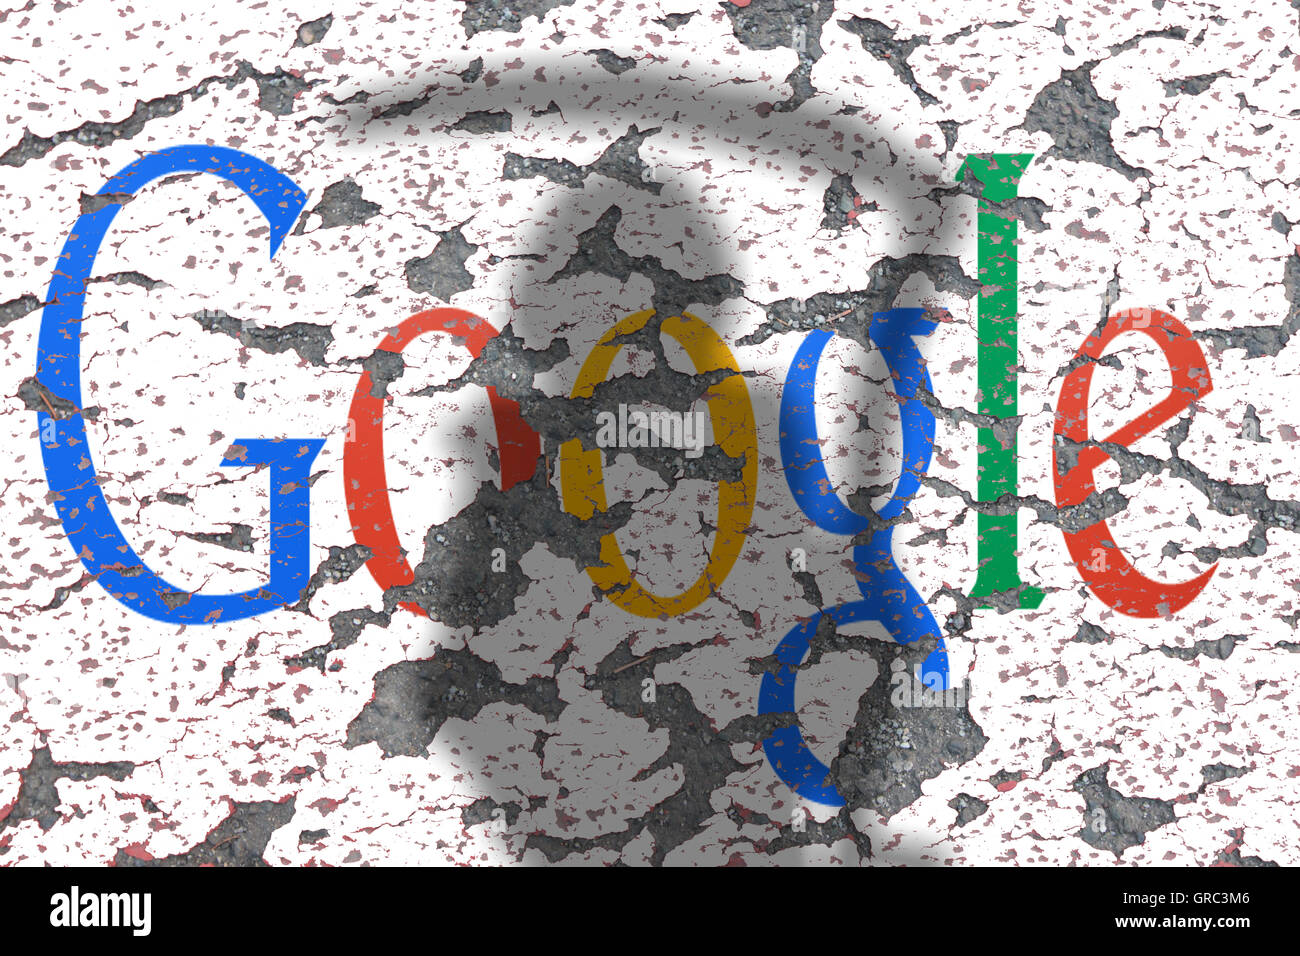 Eroding Google Sign On A Wall With Shadow Of Grim Reaper - Stock Image